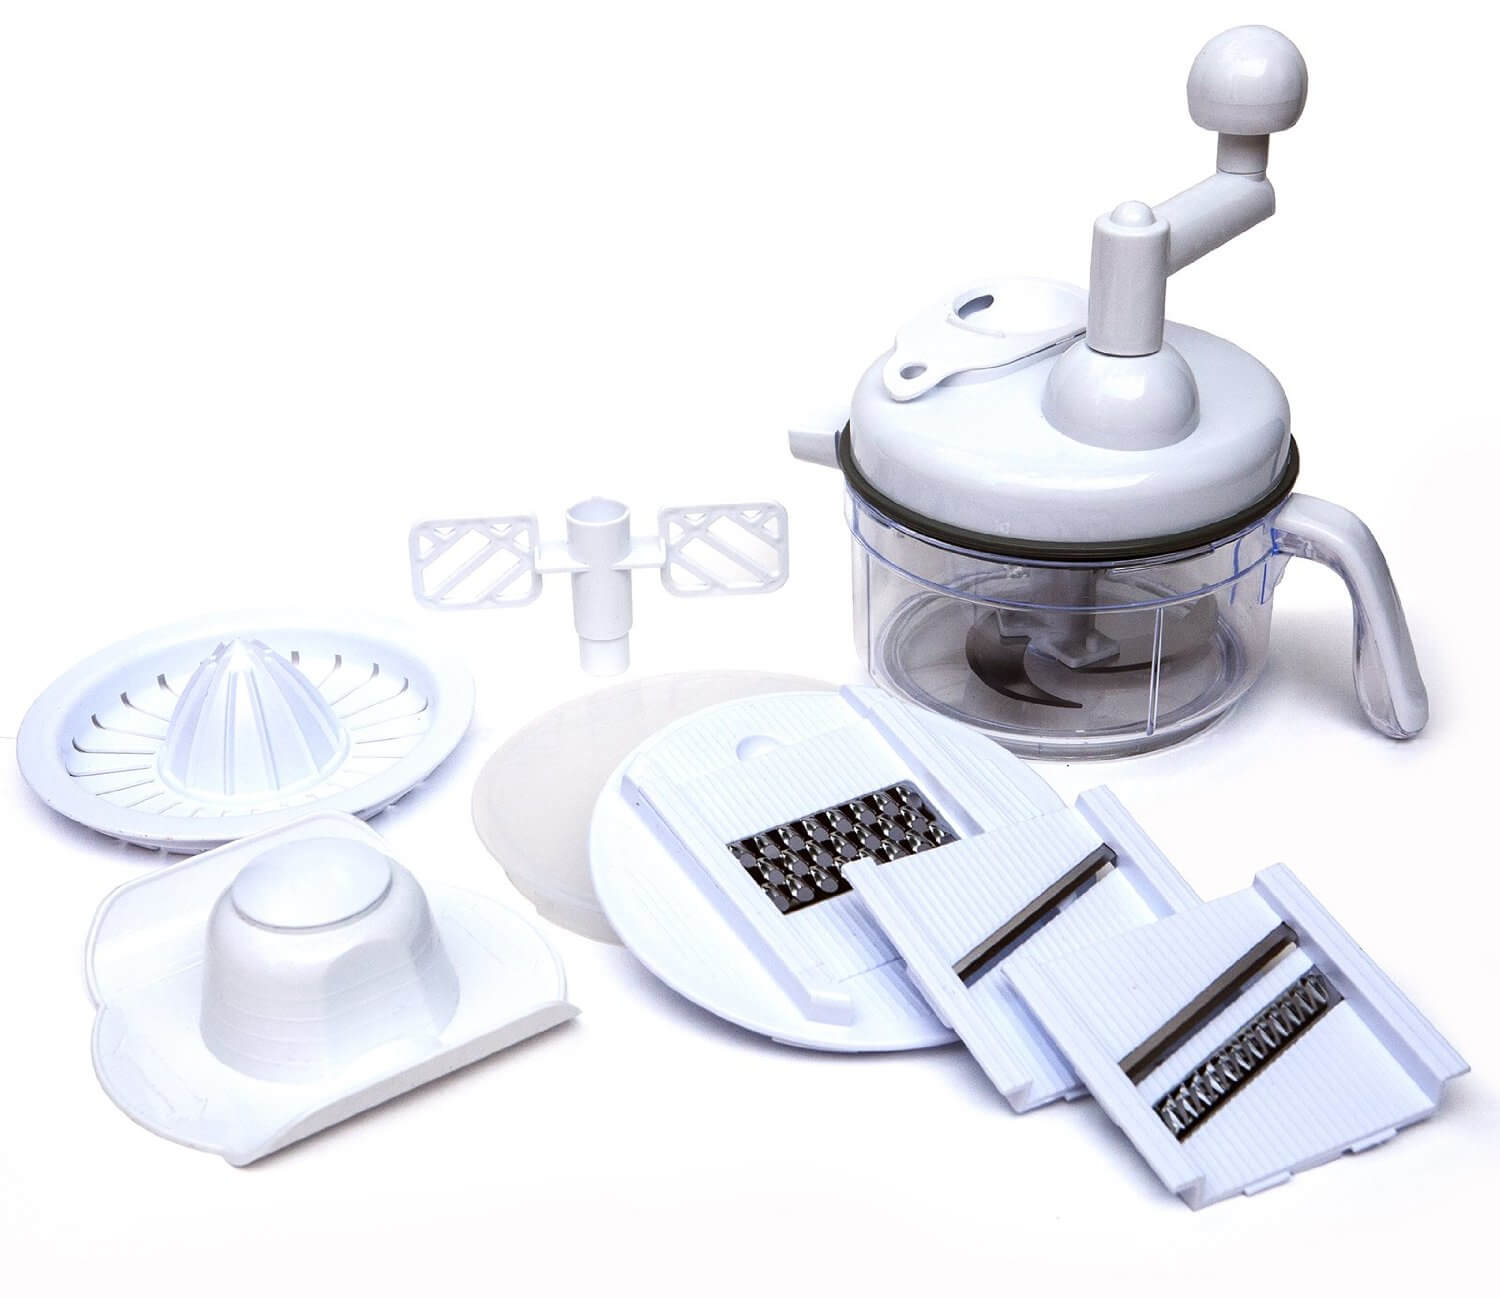 Ultra Chef Express Manual Food Chopper